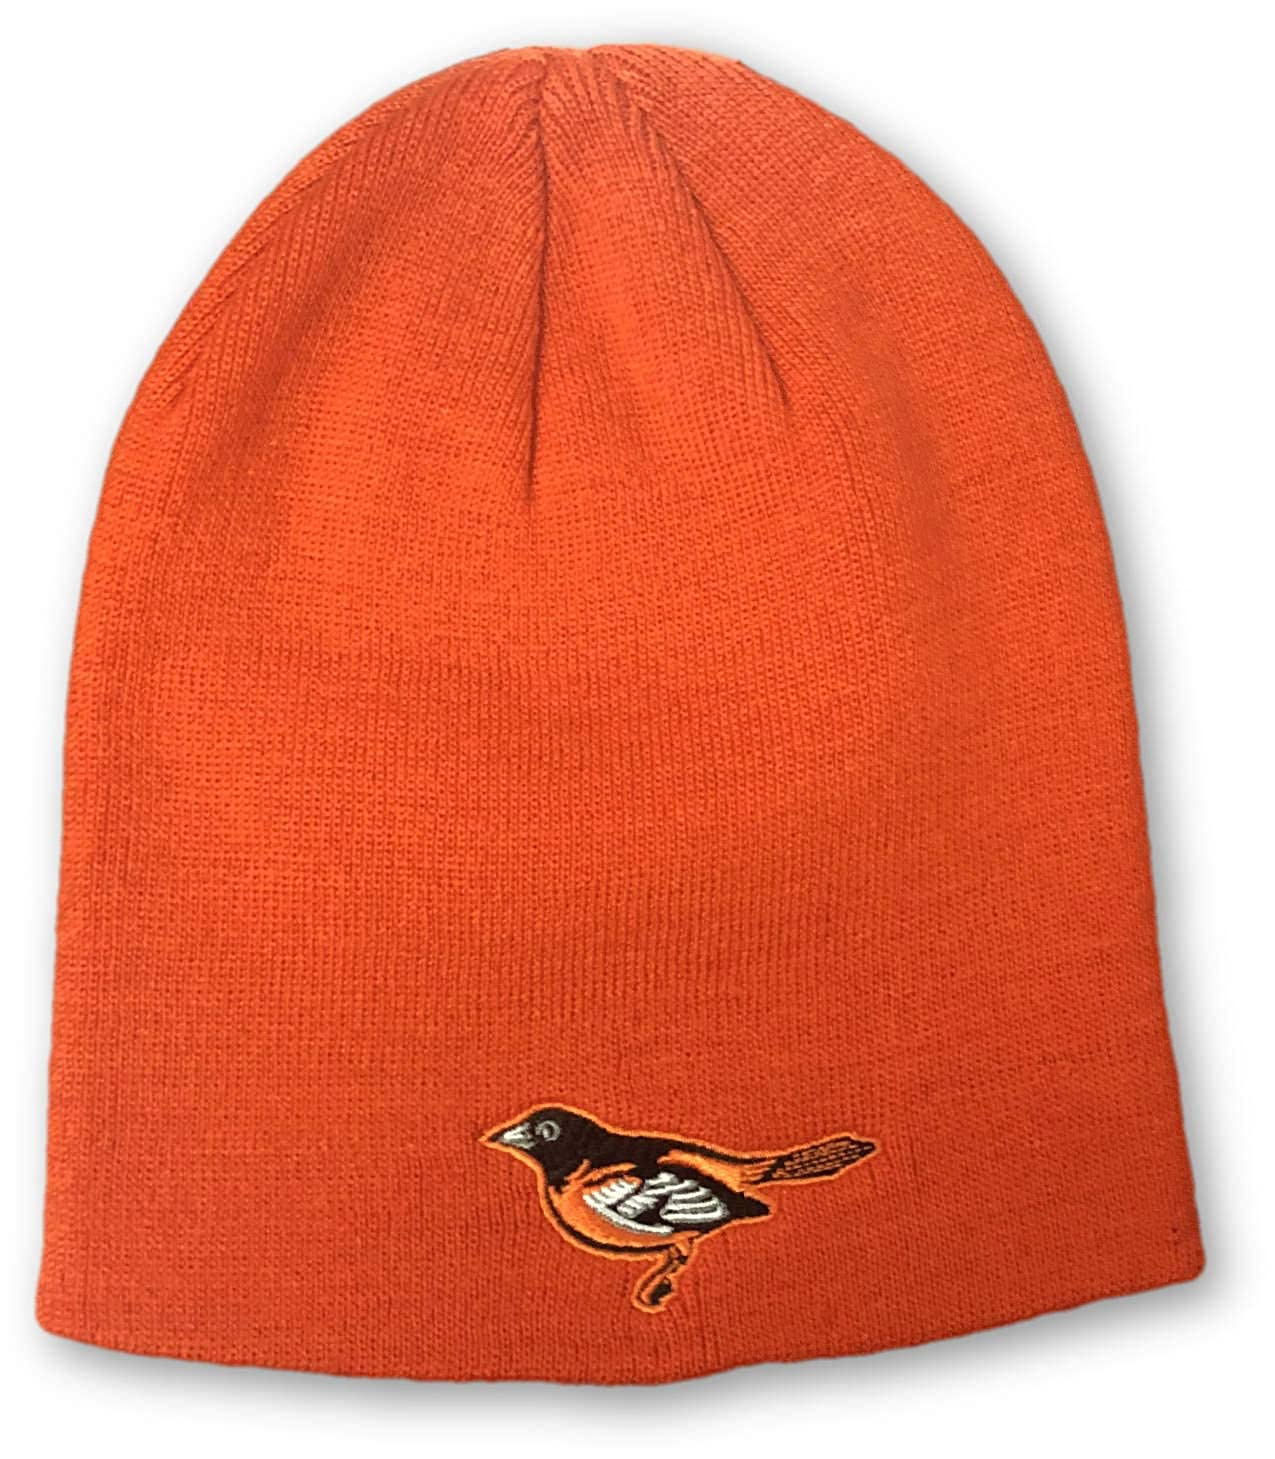 OC Sports Baltimore Orioles Bird Logo Knit Beanie Hat Orange